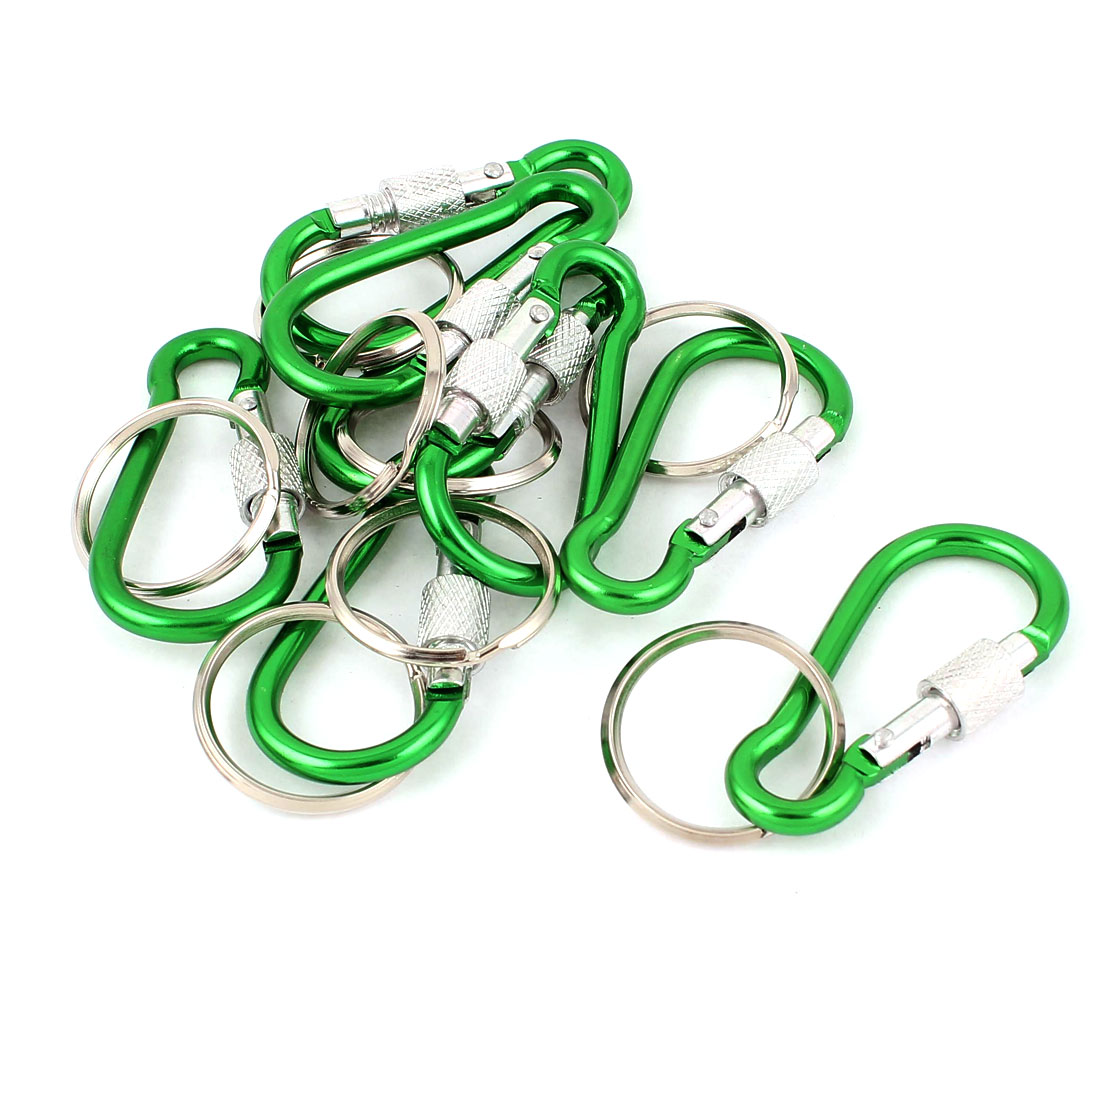 8pcs Green Screw Lock Carabiner D-Ring Camping Clip Hike Hook Keychain Keyring Key Ring Chain